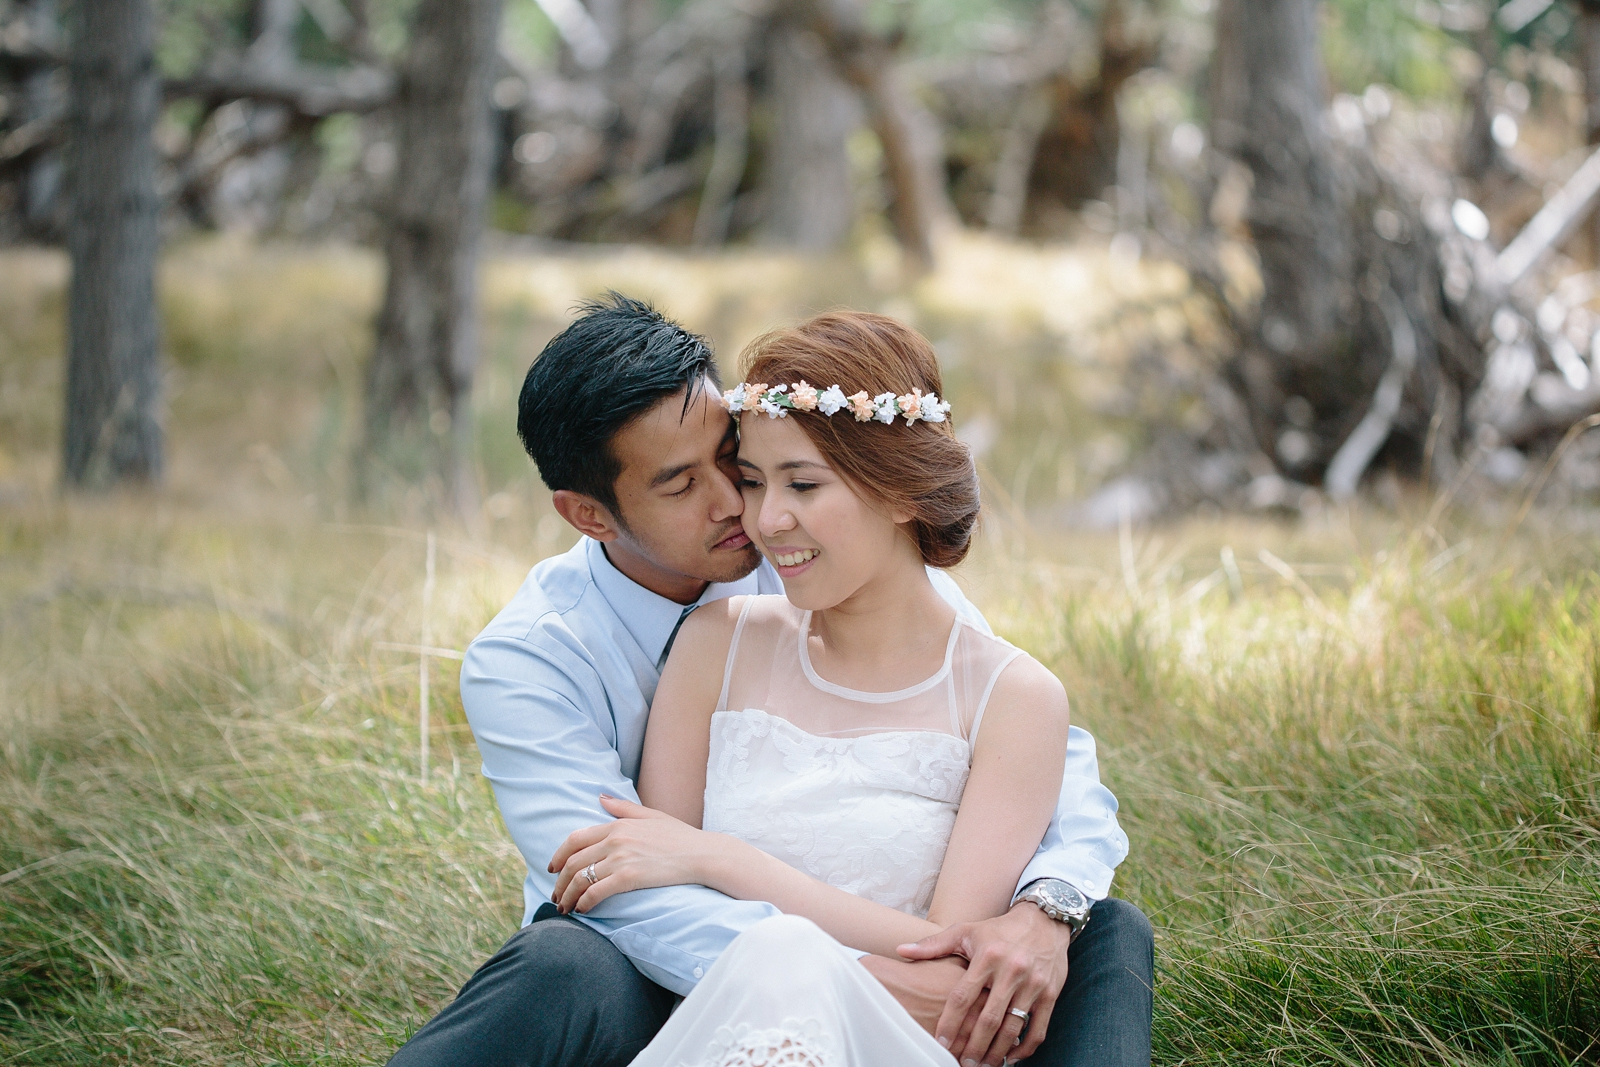 RamGia_Auckland Wedding Photographer_Patty Lagera_0046.jpg